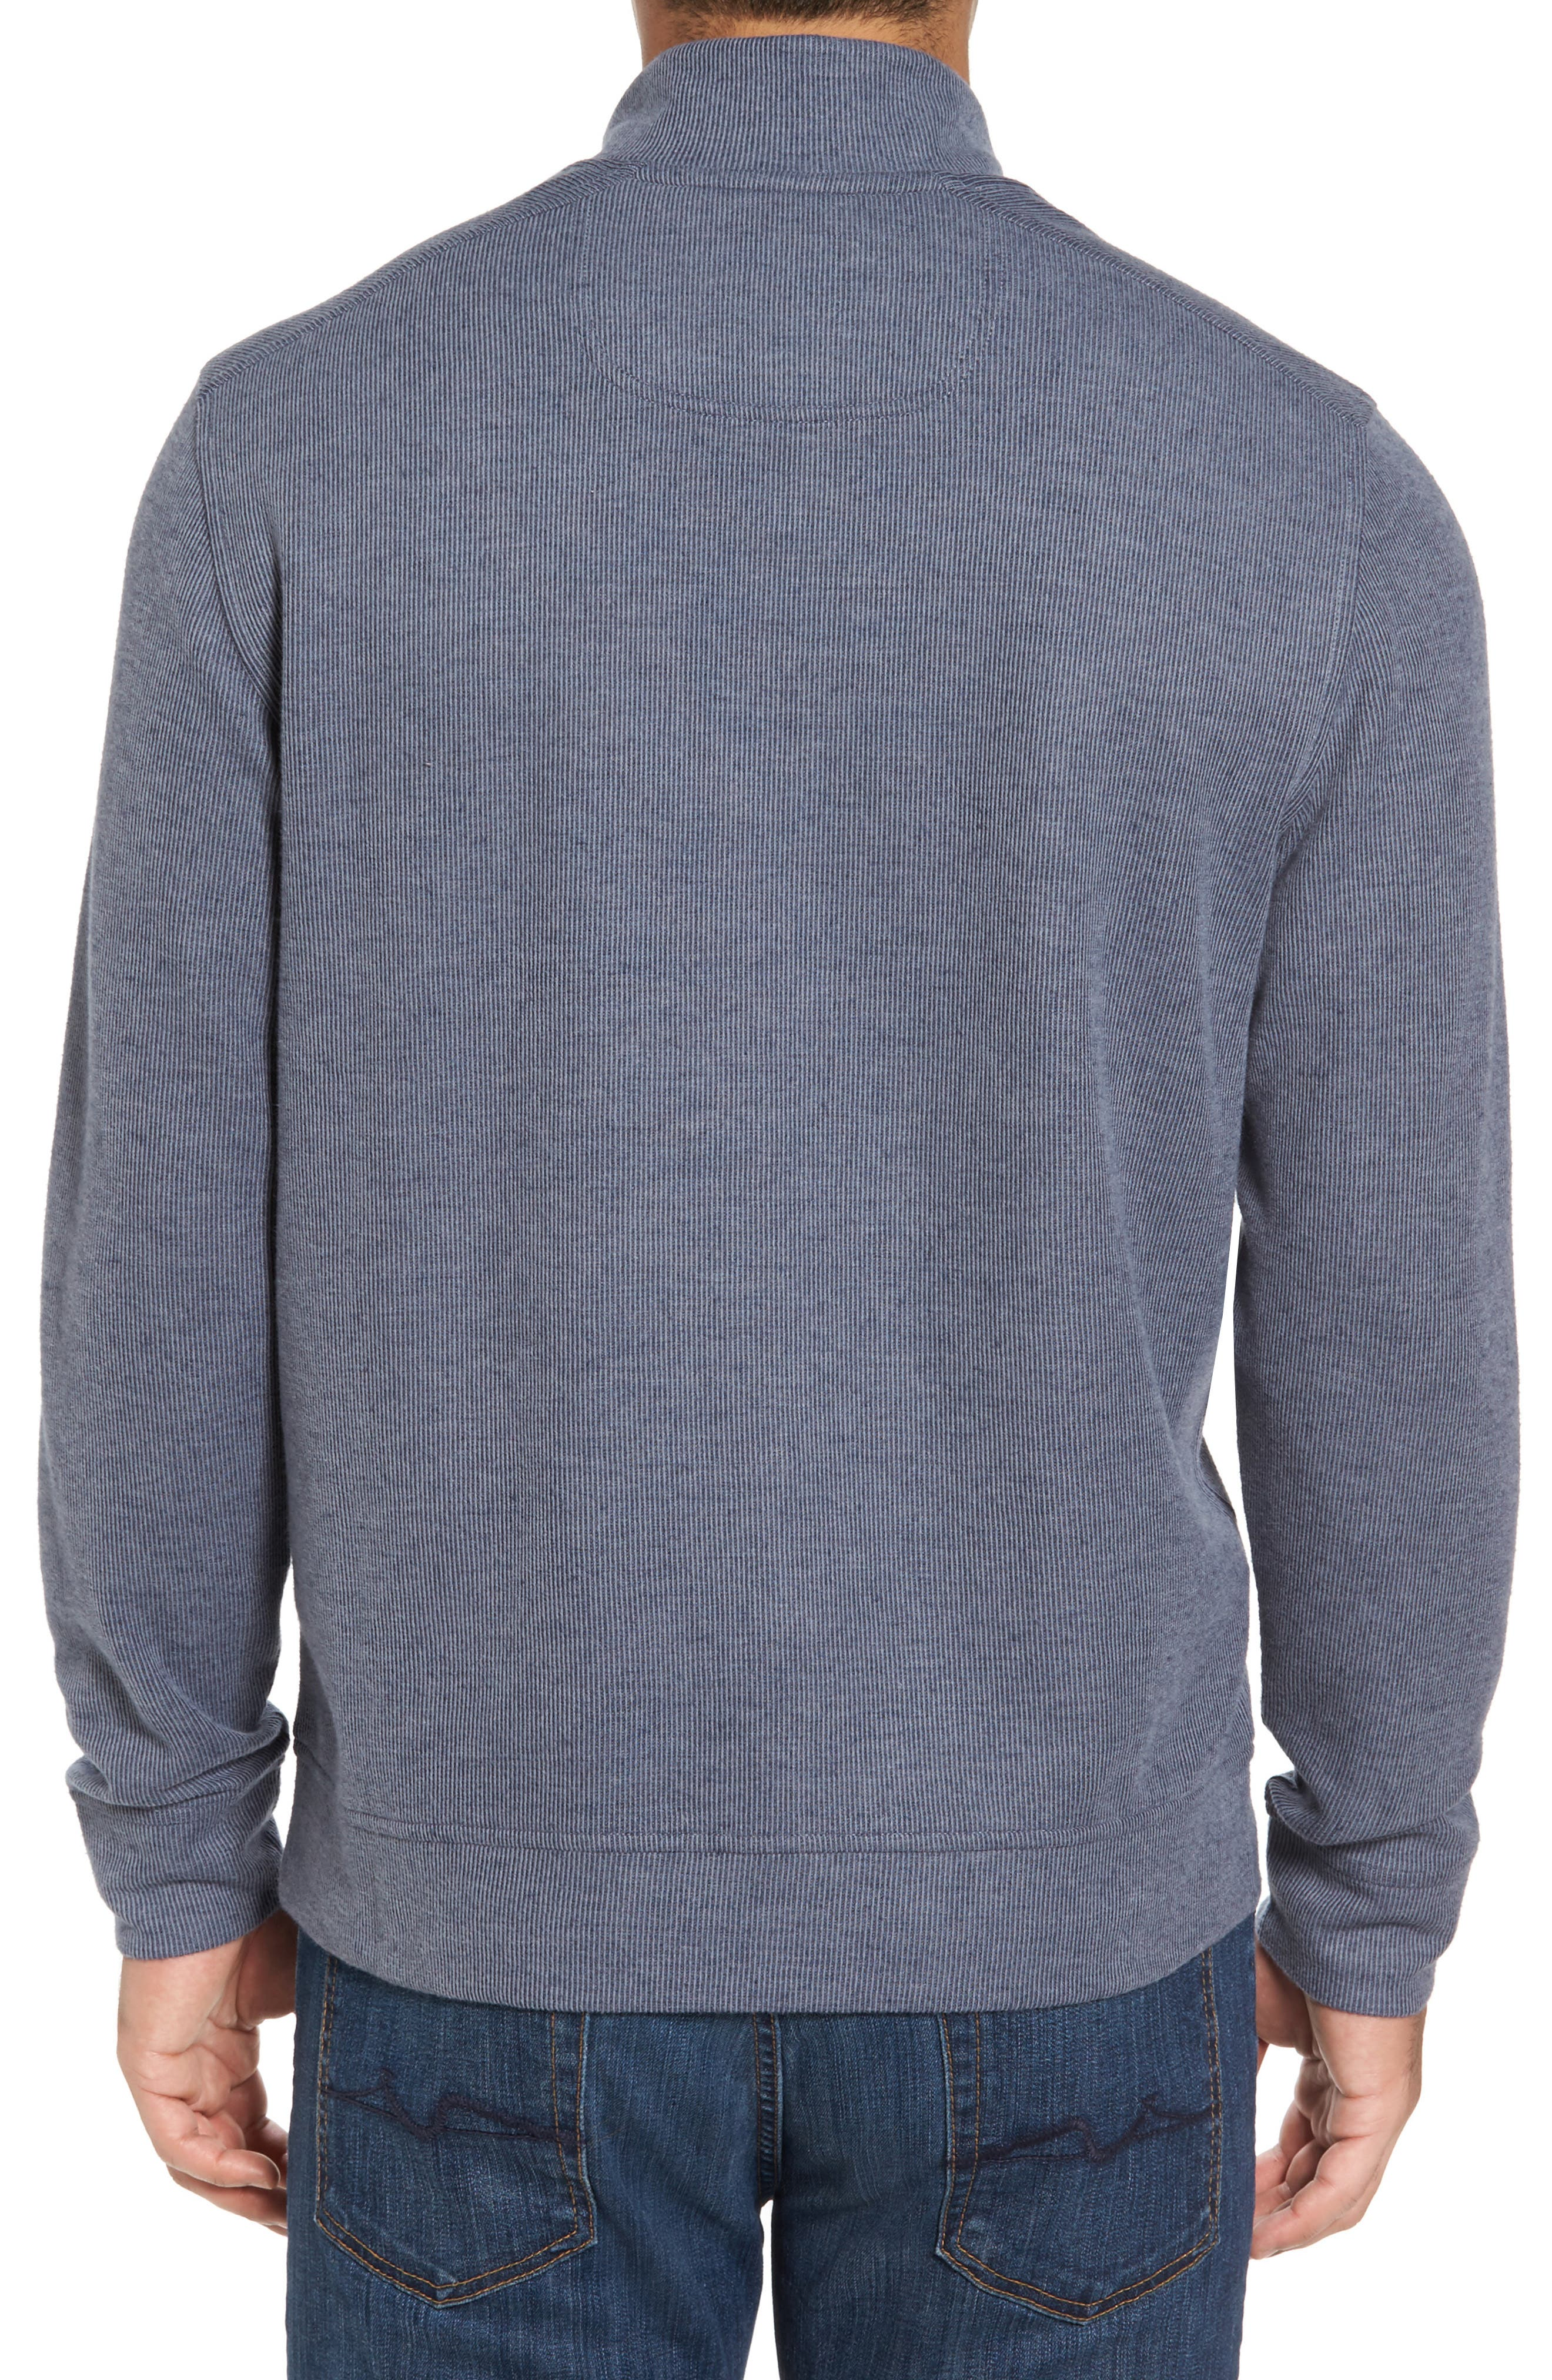 Cold Springs Snap Mock Neck Sweater,                             Alternate thumbnail 11, color,